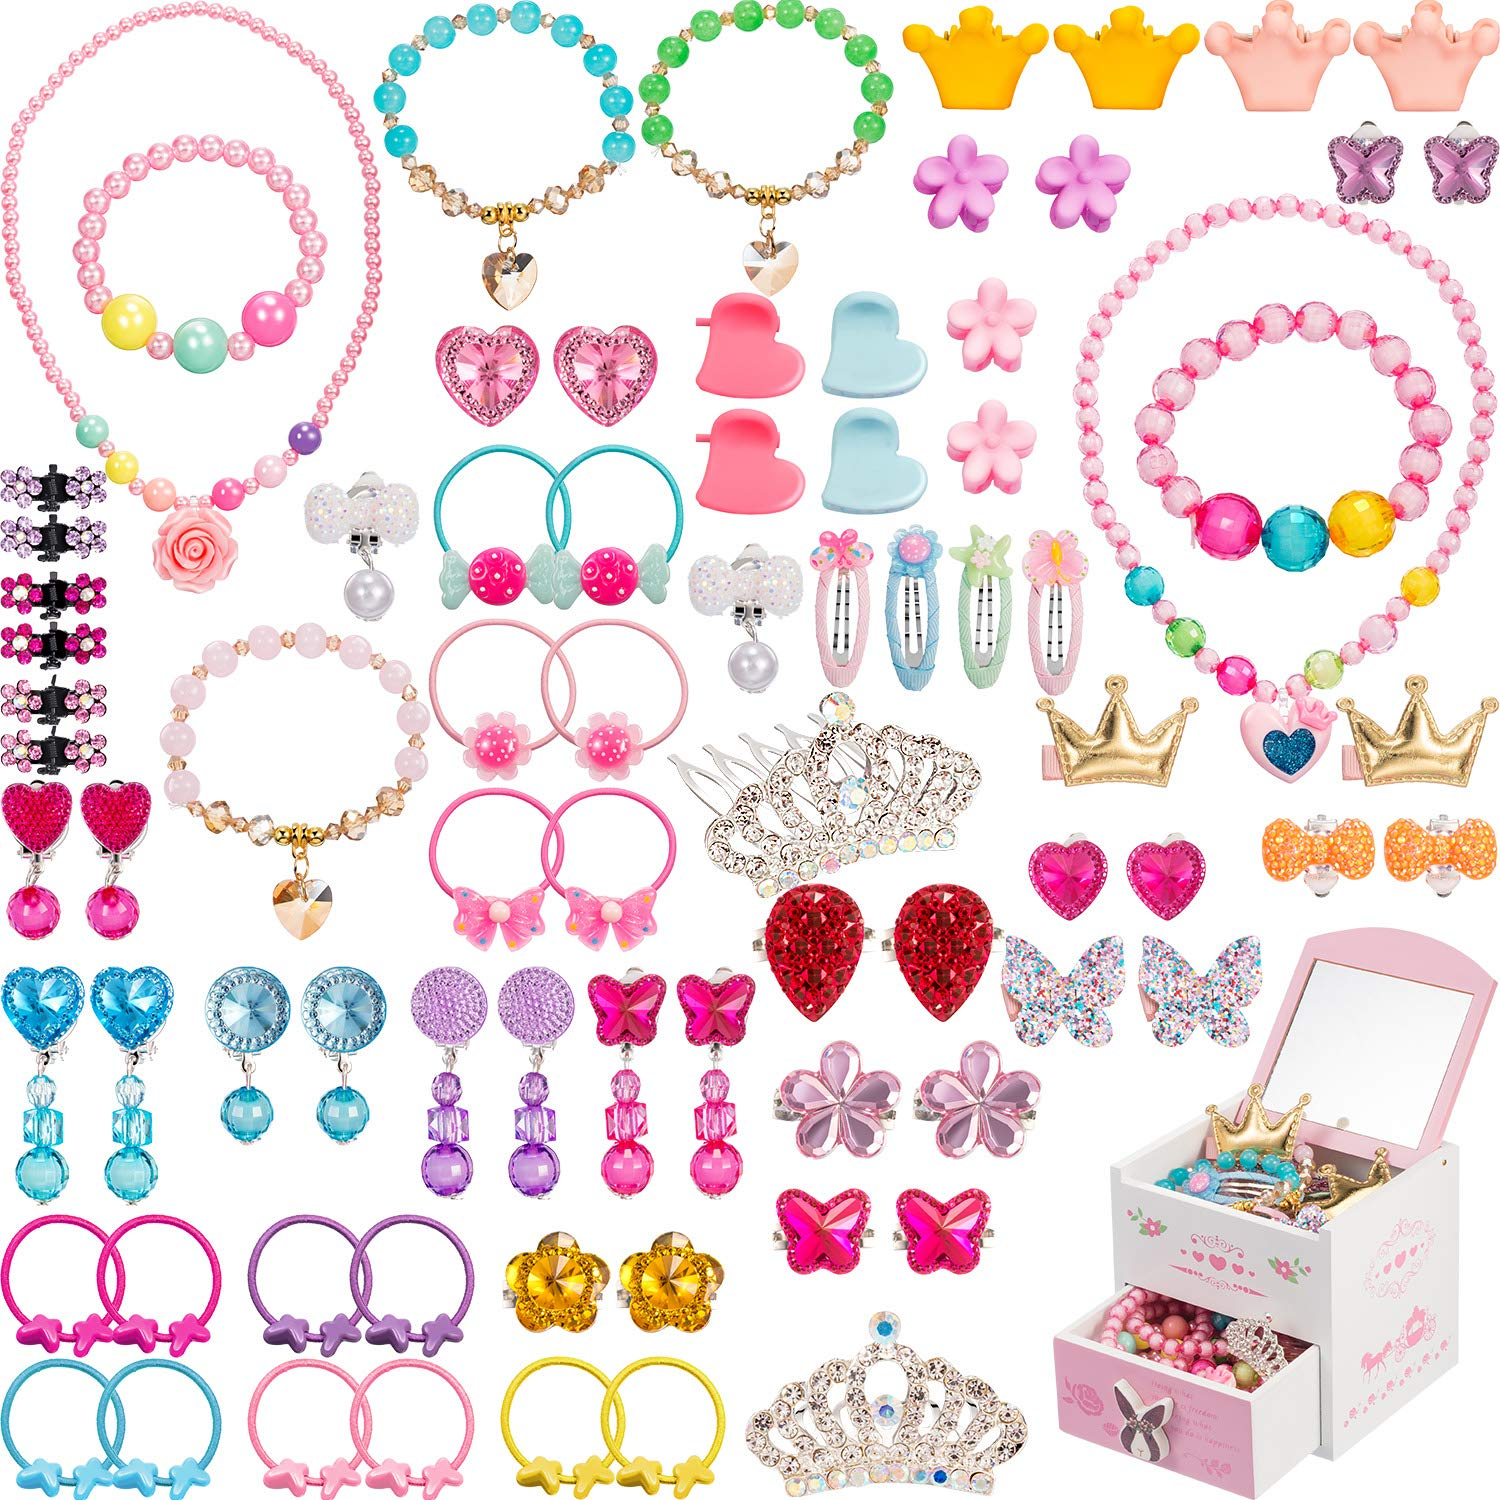 Gejoy 80 Pieces Girls Dress Up Accessories with Jewelry Box Girls Princess Jewelry, Necklace, Bracelet, Rings, Clip on Earrings, Hair Clips, Hair Ties, Mini Hair Claws (Style 3)